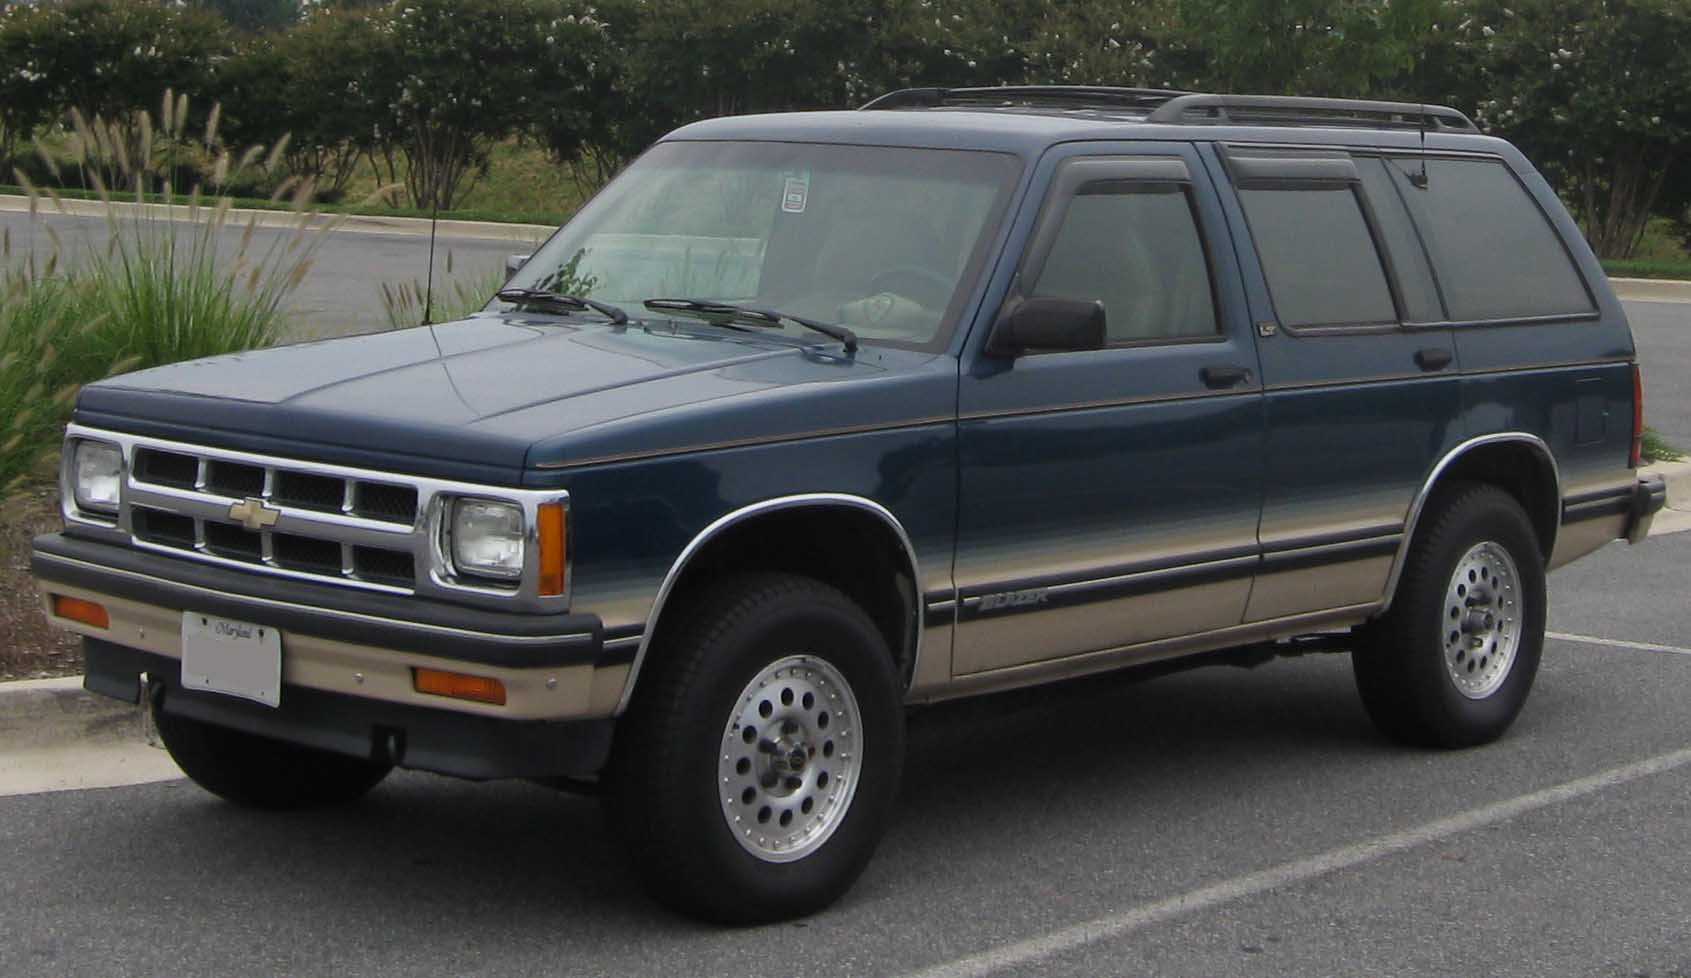 Chevrolet blazer pictures information and specs auto jpg 1691x978 1995 s10  blazer